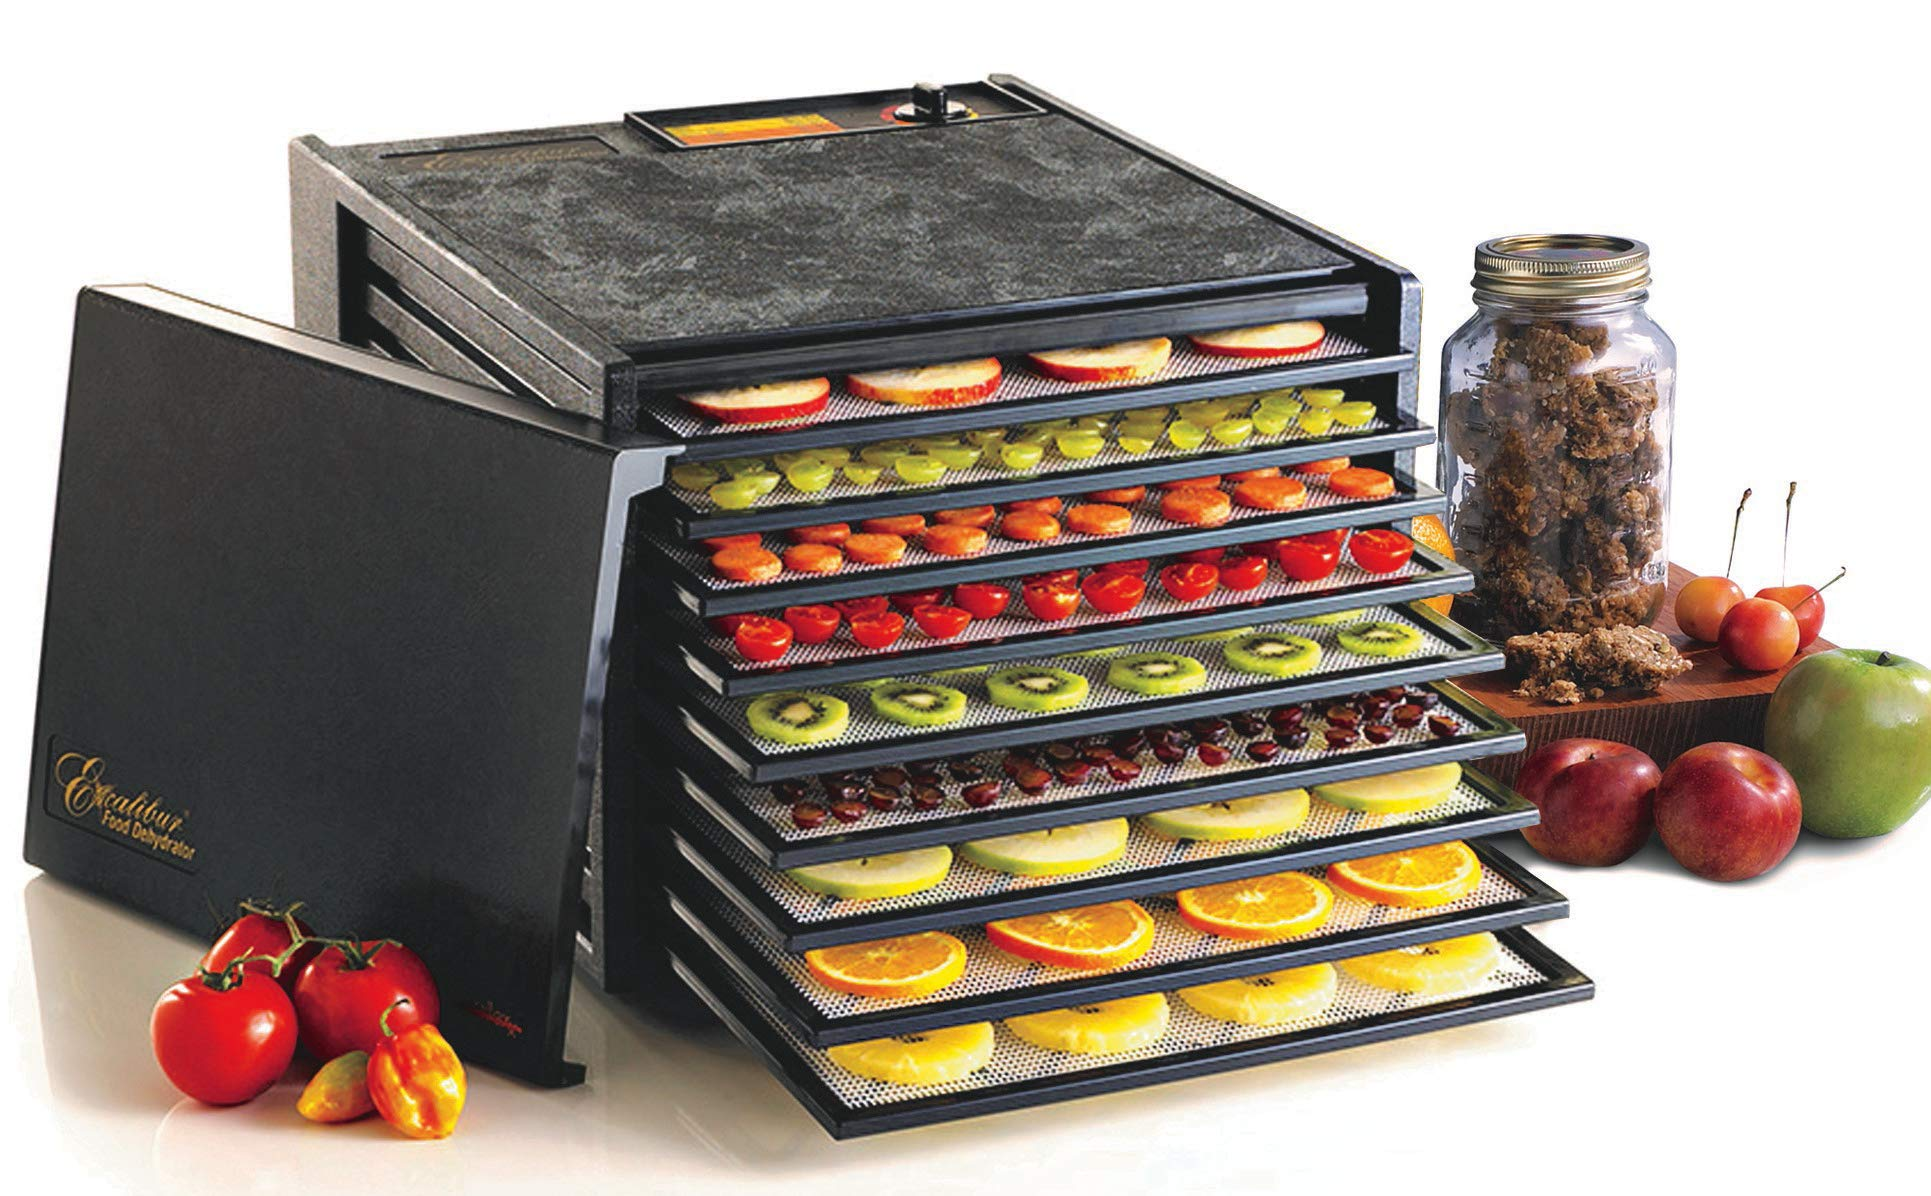 Excalibur 3900B 9-Tray Electric Food Dehydrator with Adjustable Thermostat Accurate Temperature Control Faster and Efficient Drying Includes Guide to Dehydration Made in USA, 9-Tray, Black by Excalibur